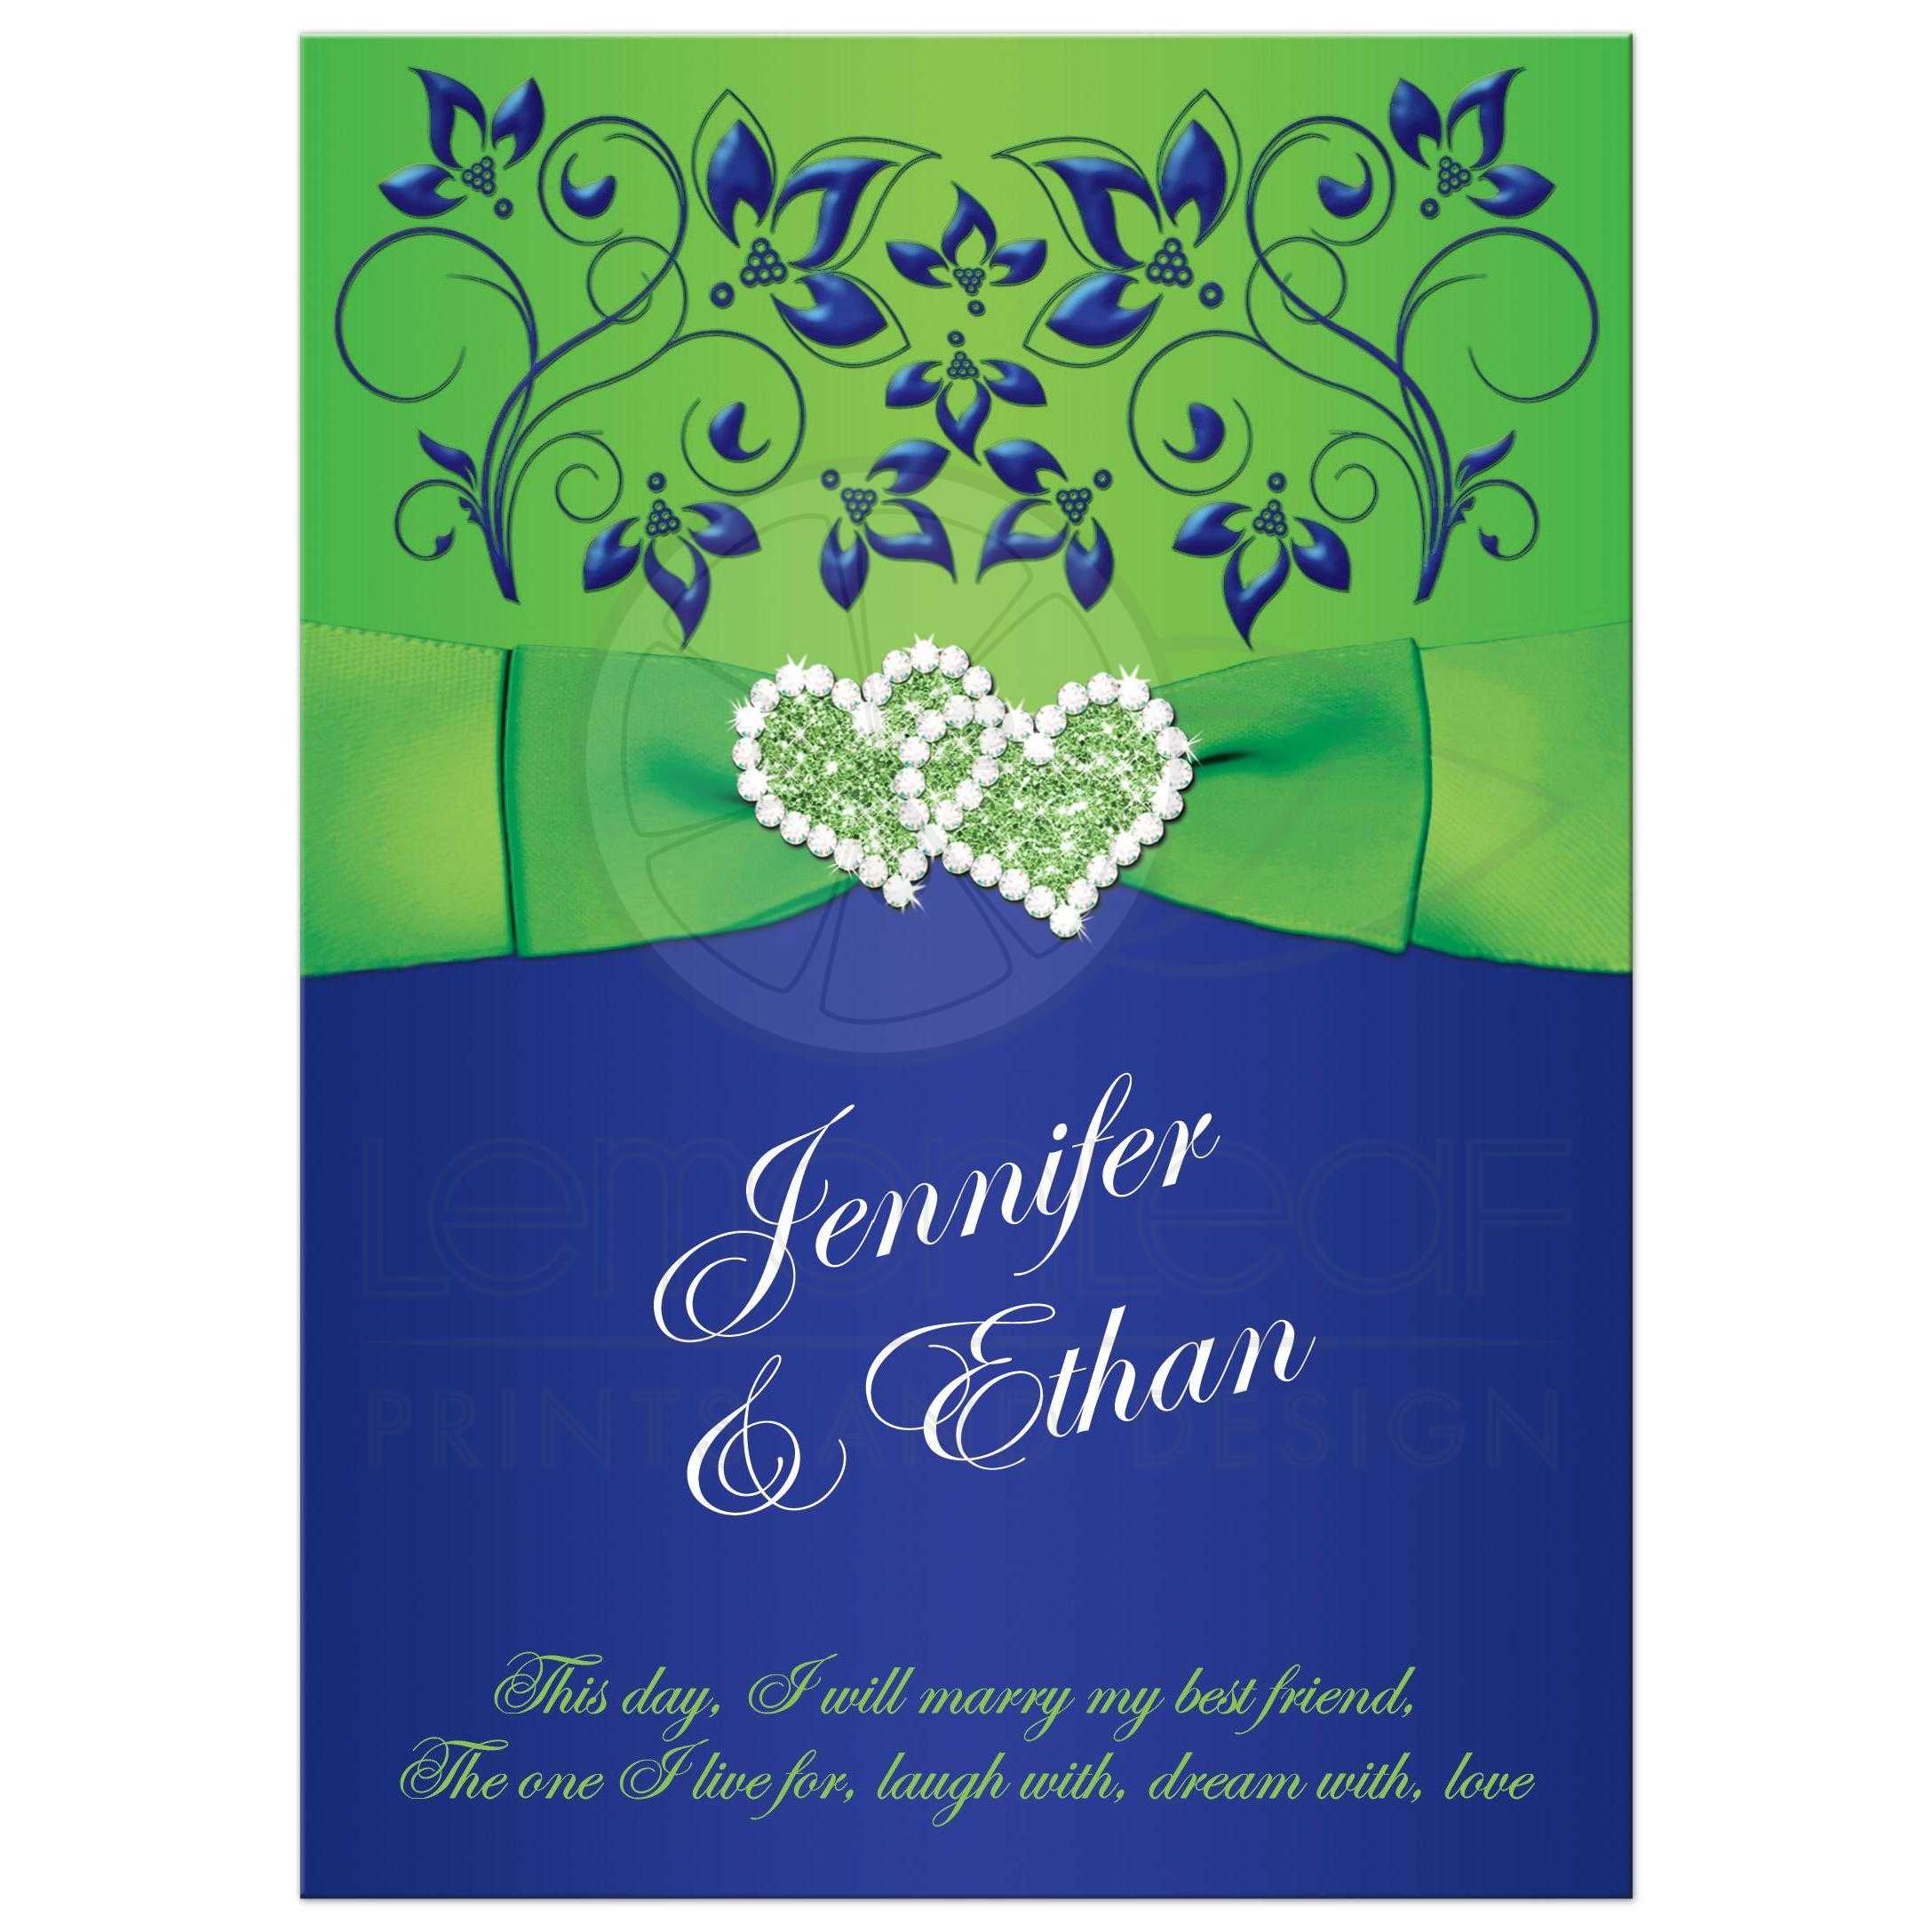 Wedding Invitation | Royal Blue, Lime Green Floral | PRINTED Ribbon, Bow, Double Hearts